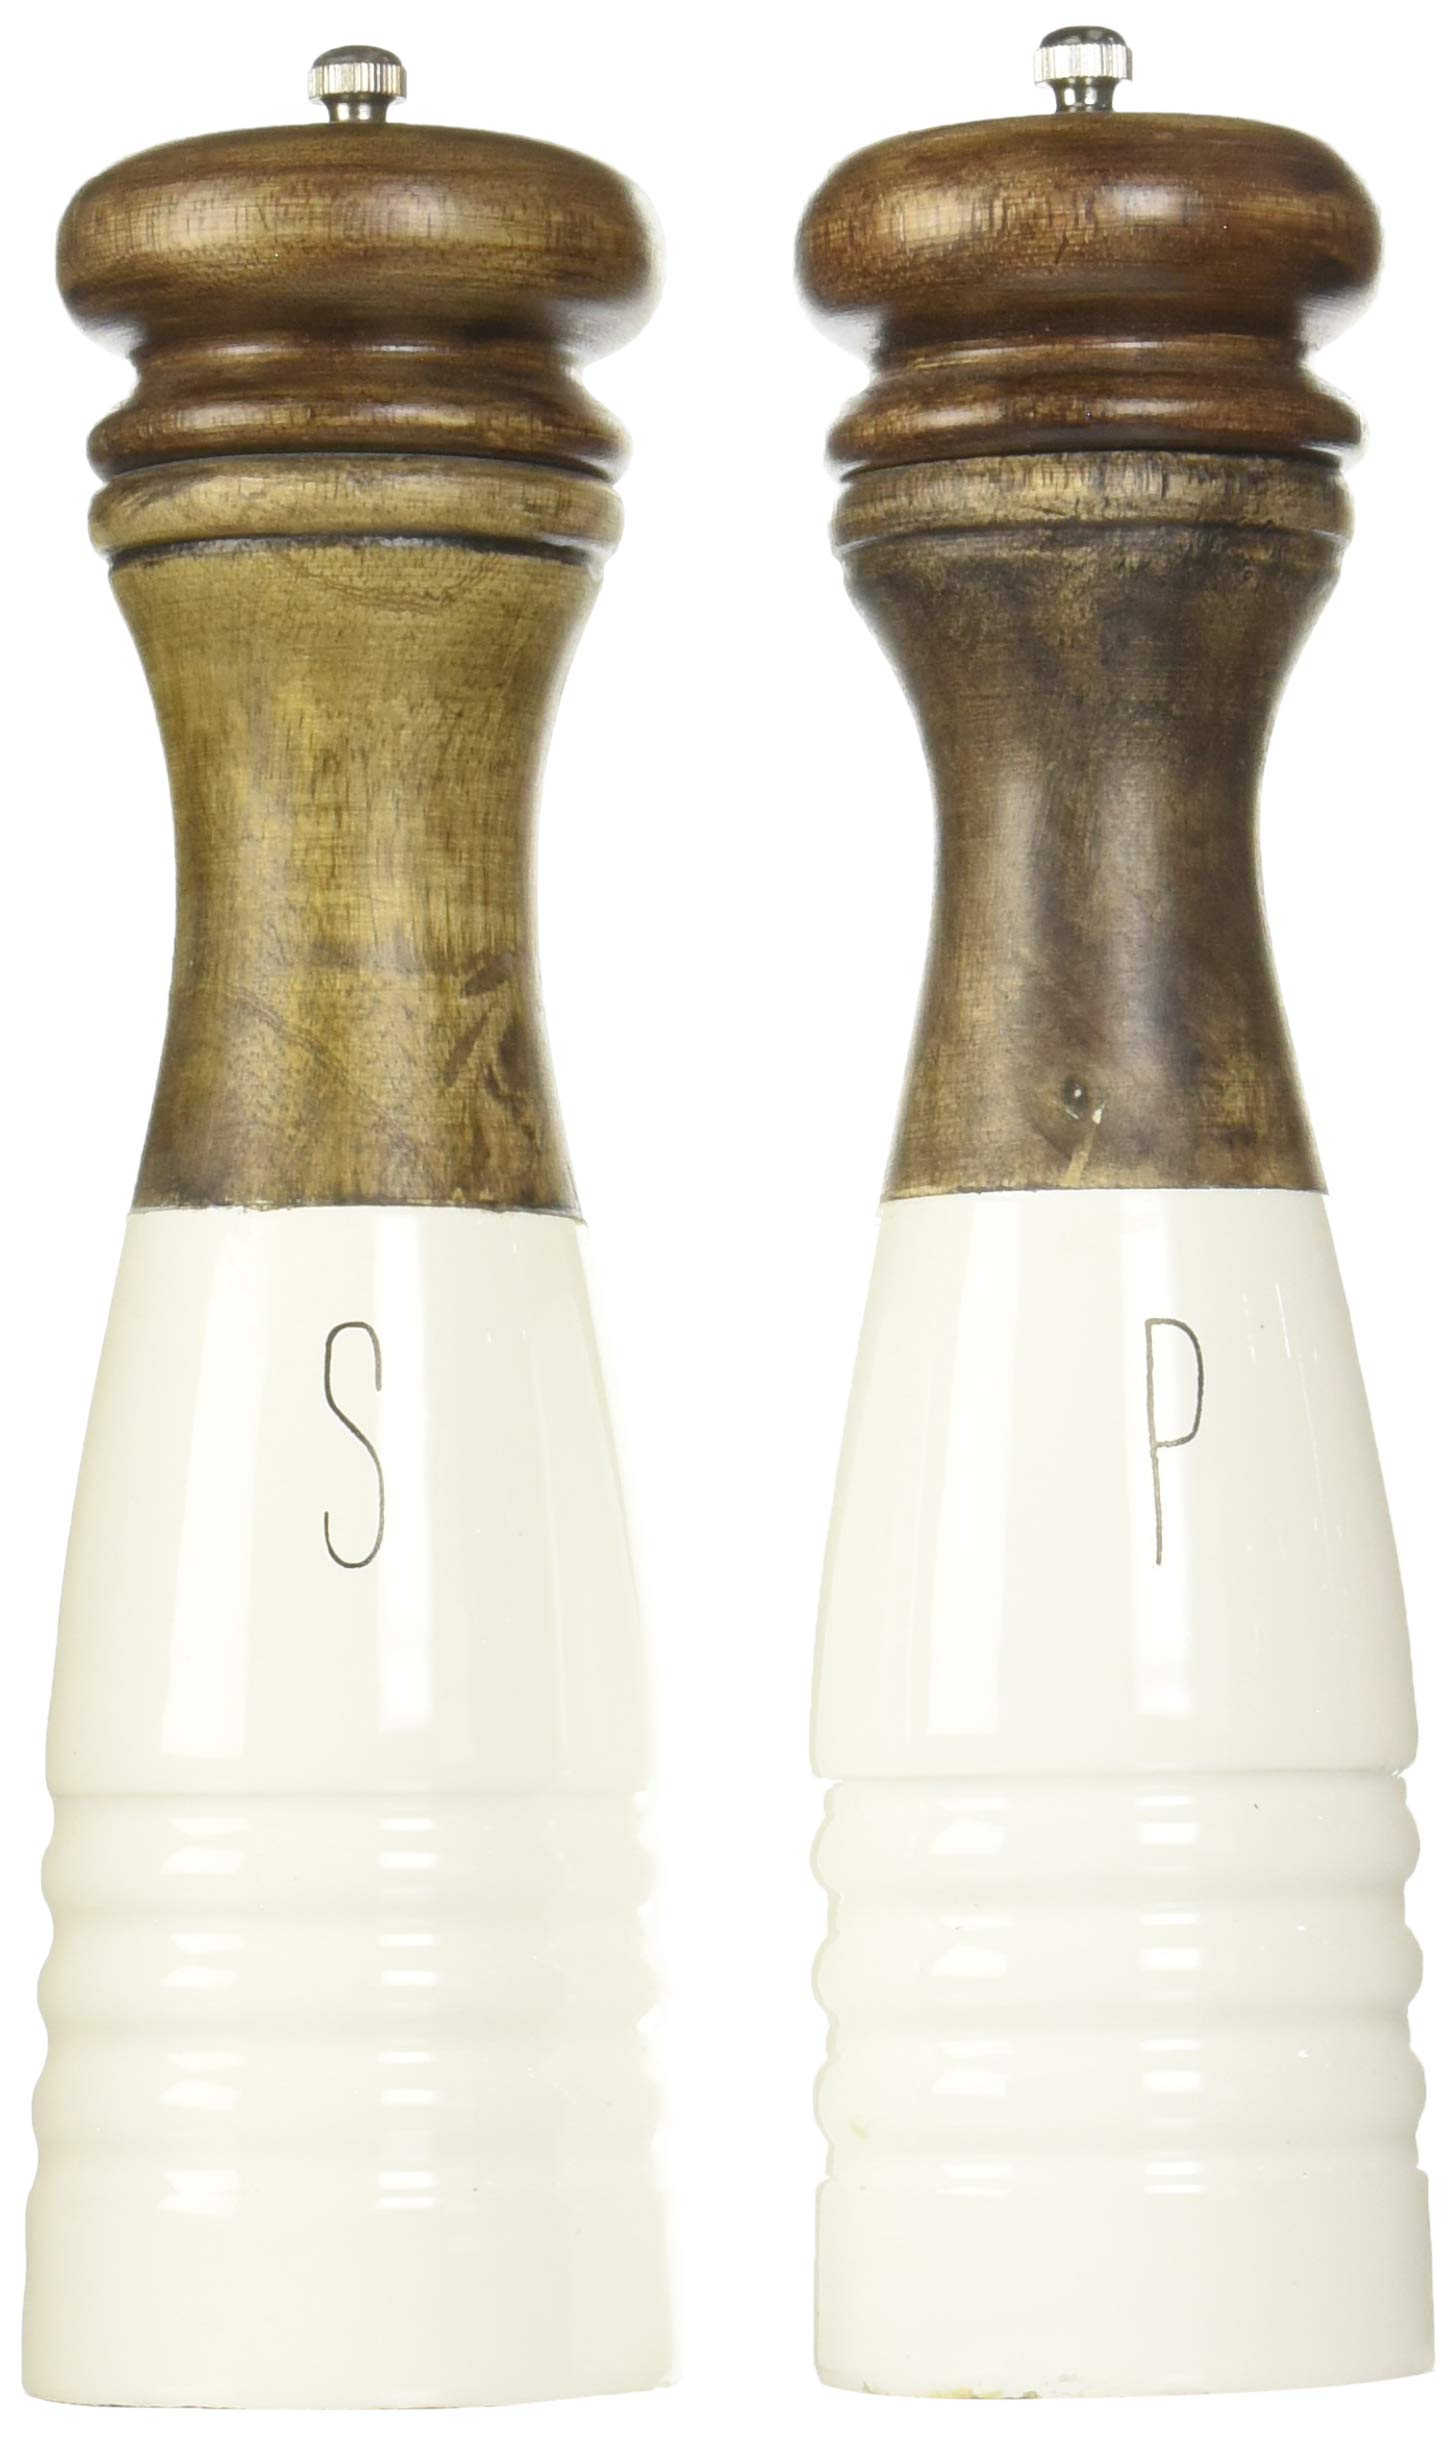 Mud Pie 4504007 Farmhouse Wood and Enamel Mills Salt and Pepper Set, One Size, White, Brown by Mud Pie